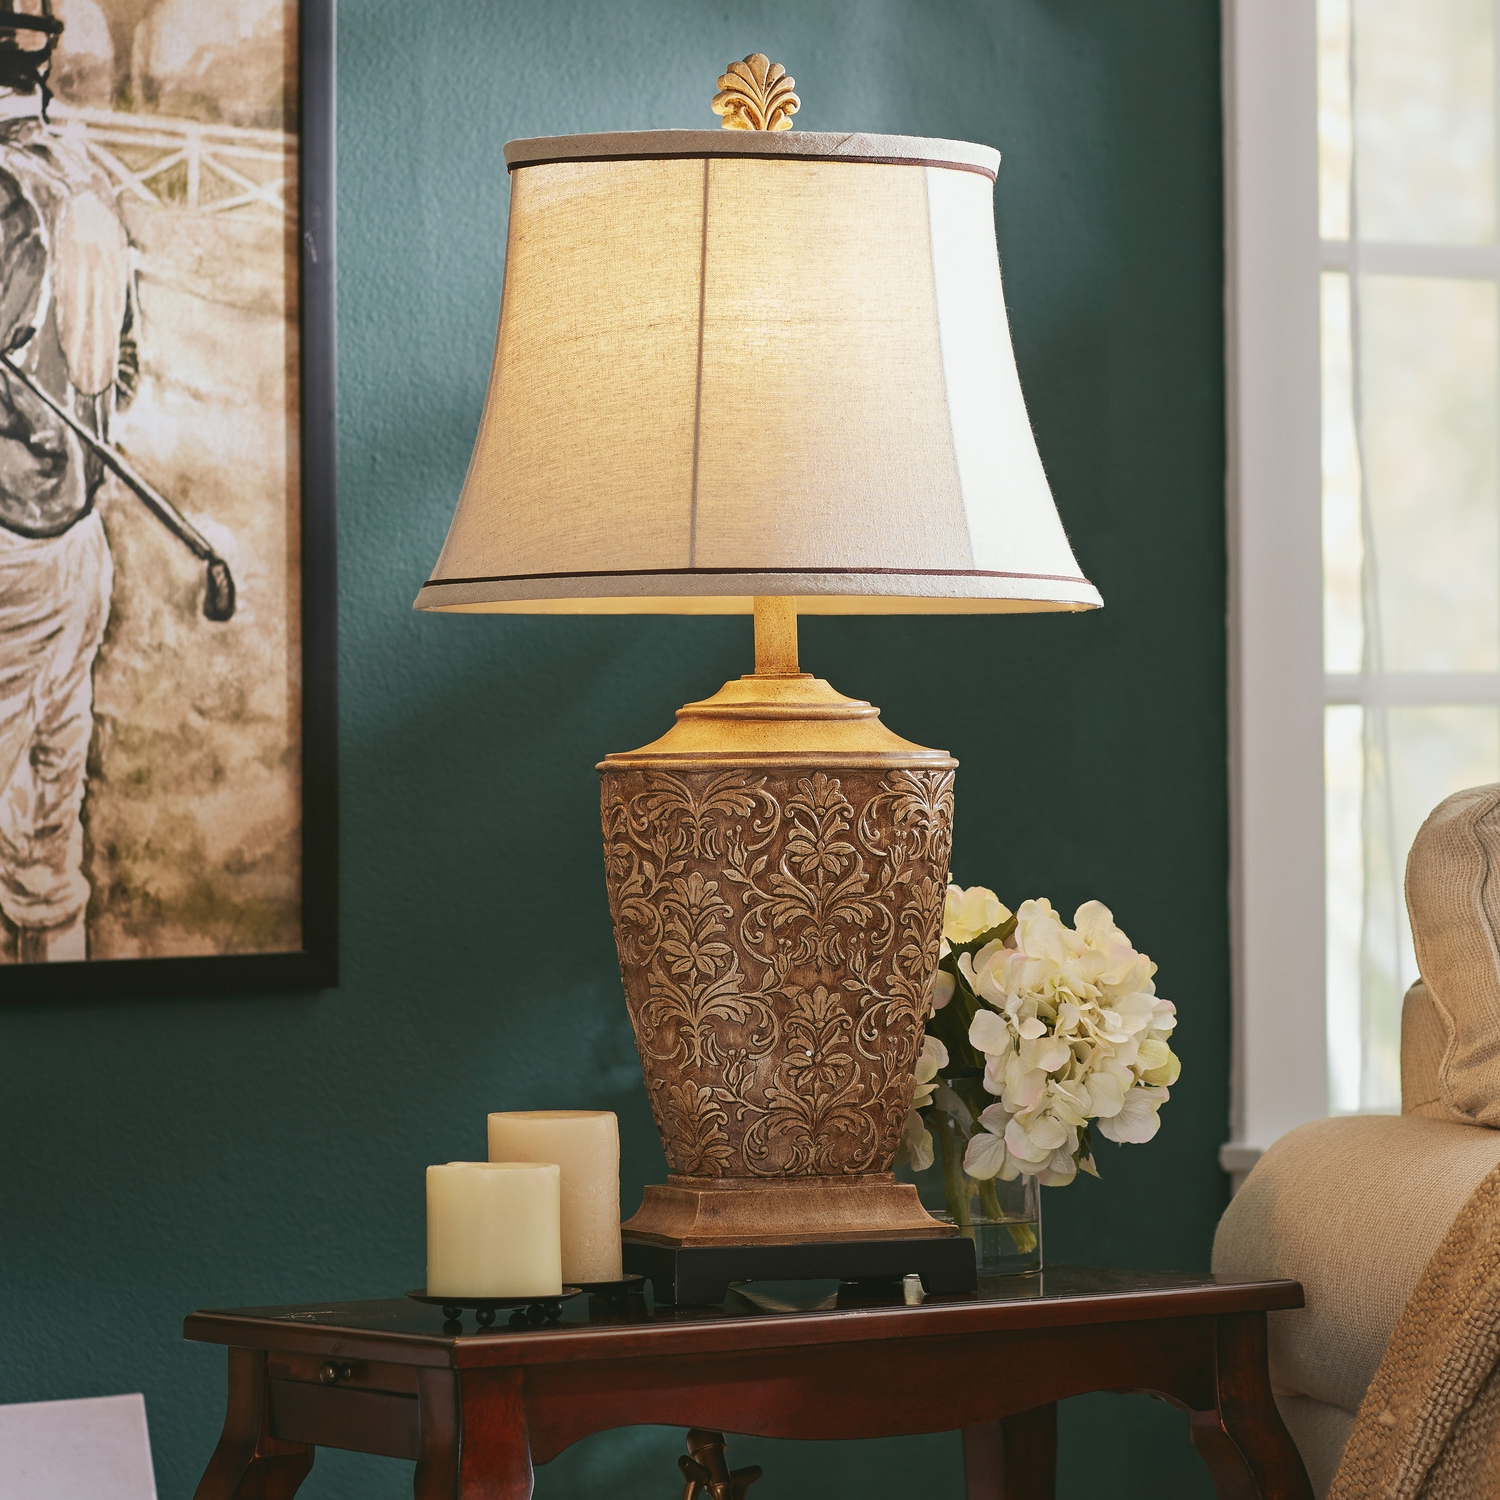 title | Table Lamps For Living Room